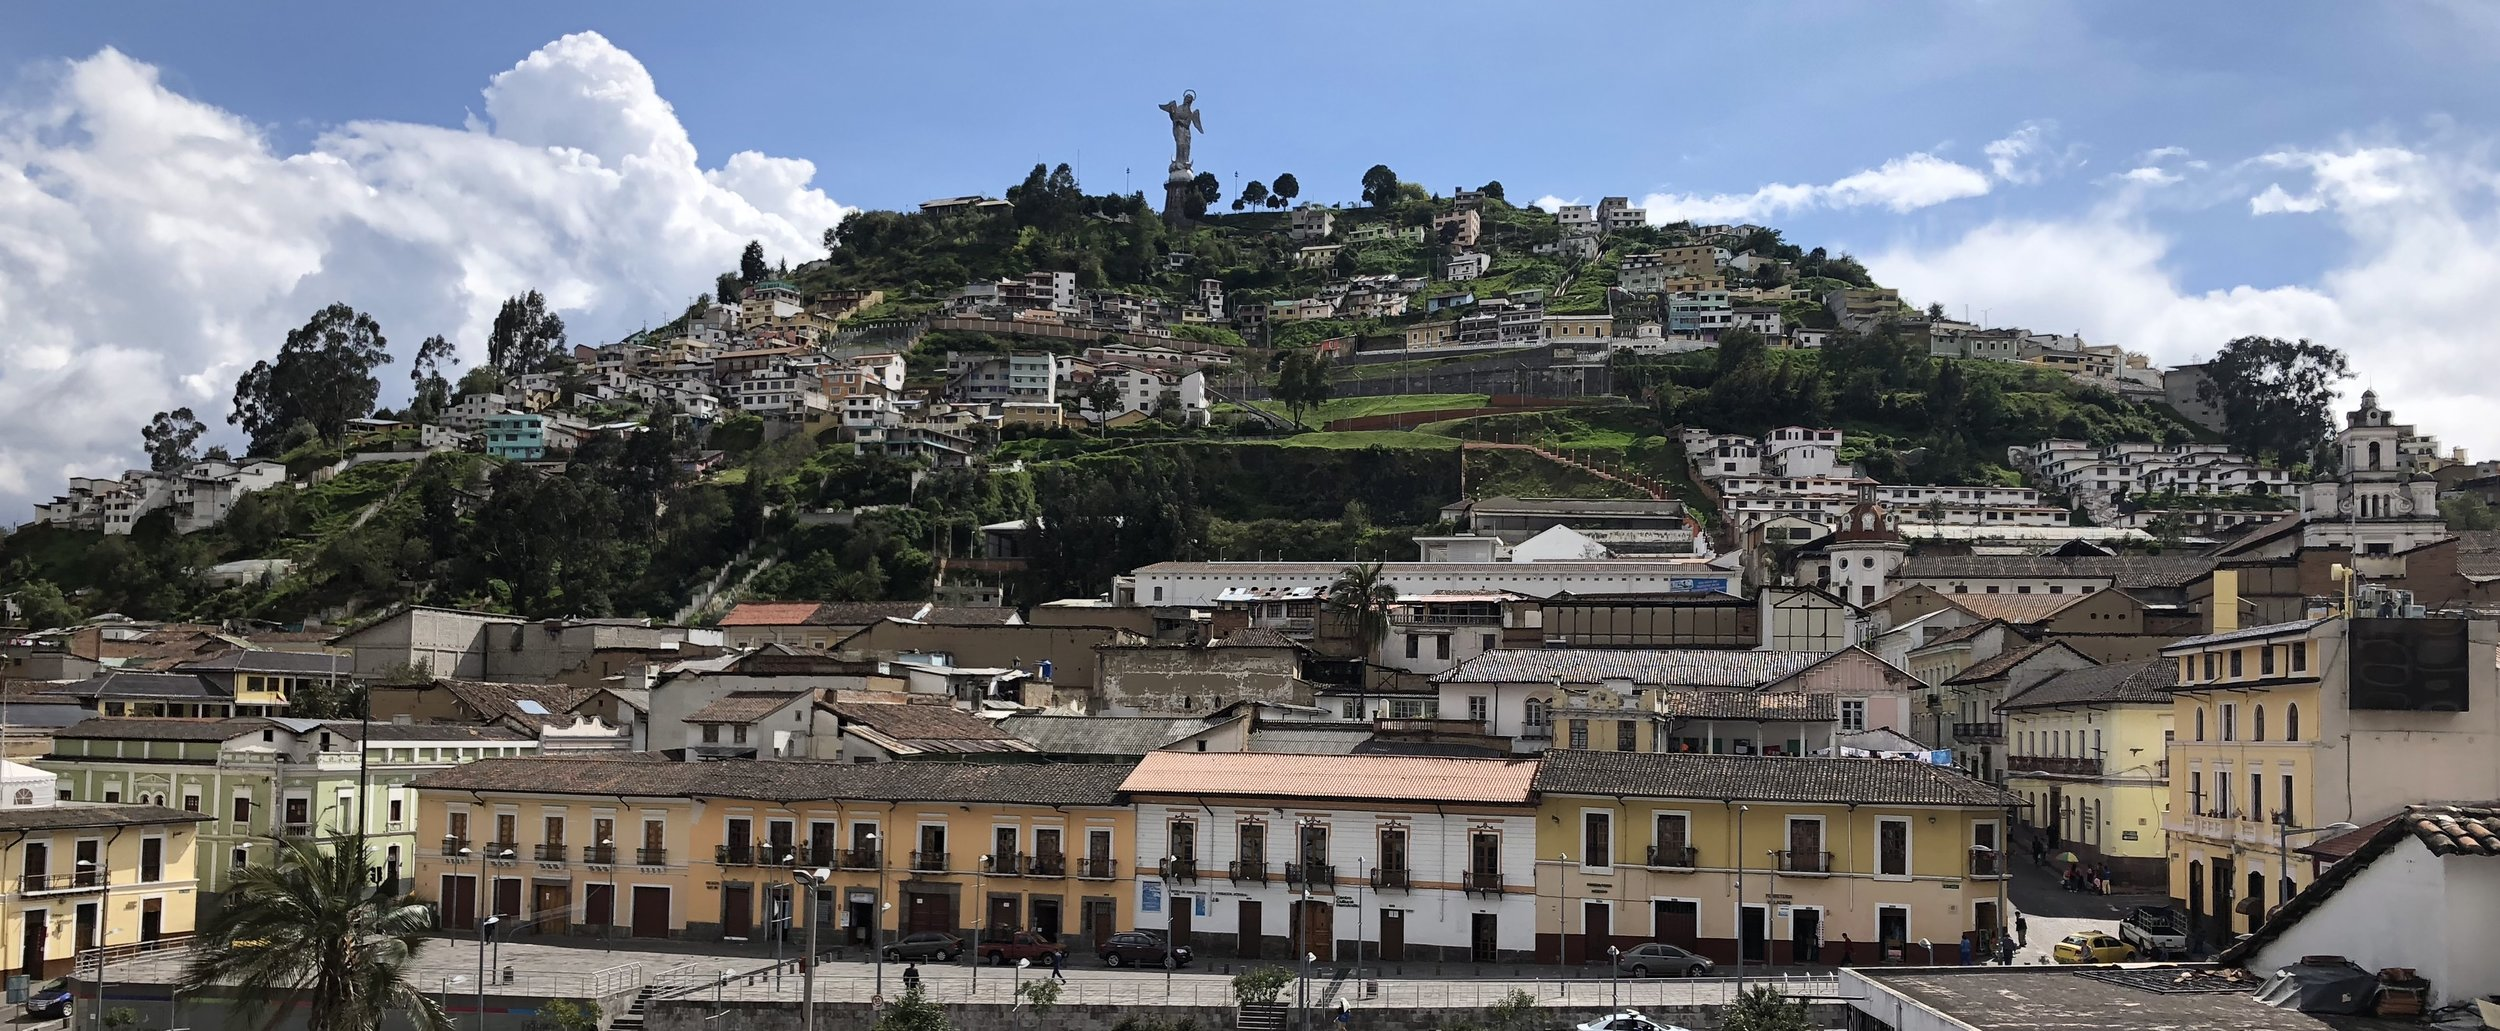 The El Panecillo hill overlooking Quito (Image: Valerie Lundeen)